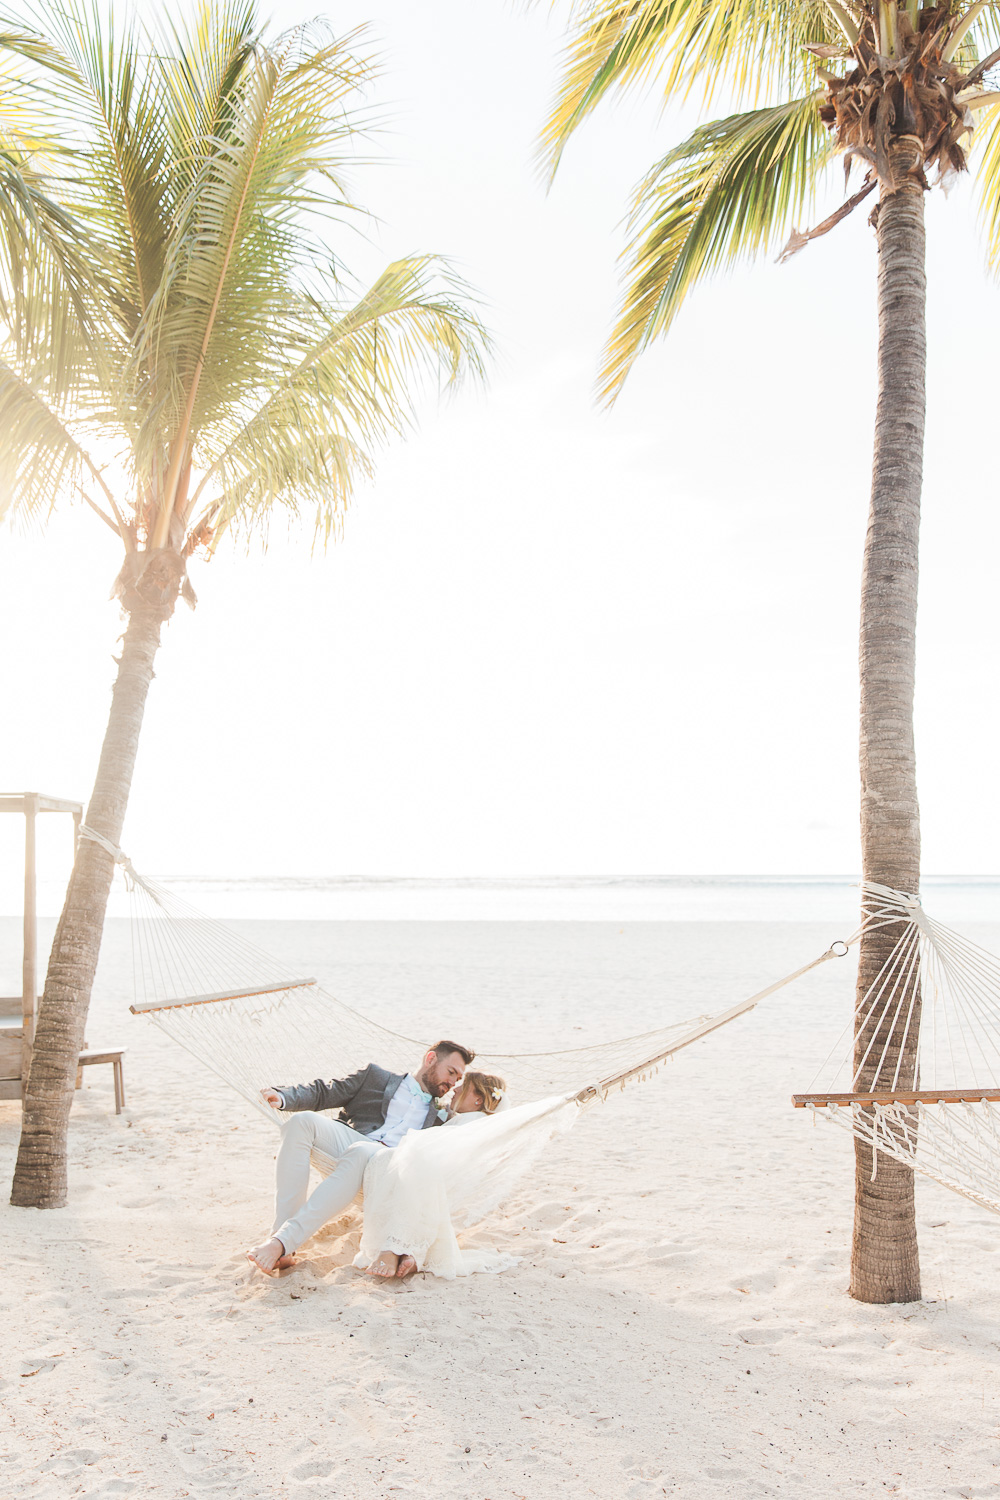 Bride and groom in a hammock at their destination wedding in Mauritius at Dinarobin Beachcomber Golf Resort and Spa